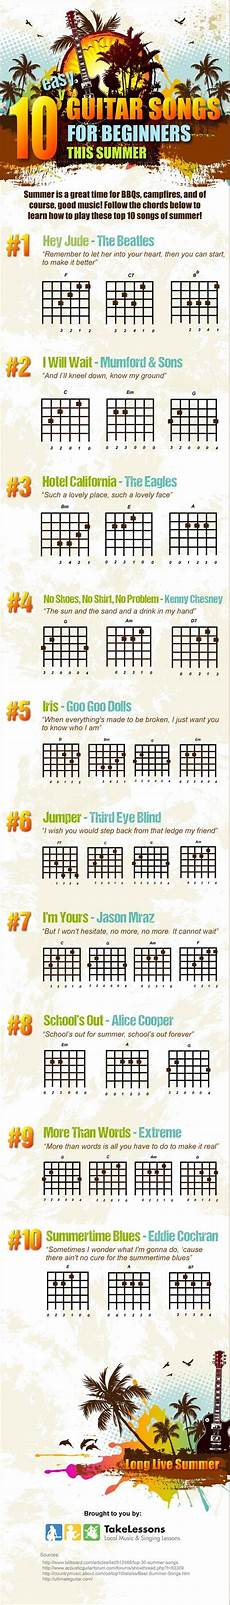 how to play guitar songs for beginners 10 easy guitar songs for beginners this summer infographic guitar songs for beginners easy